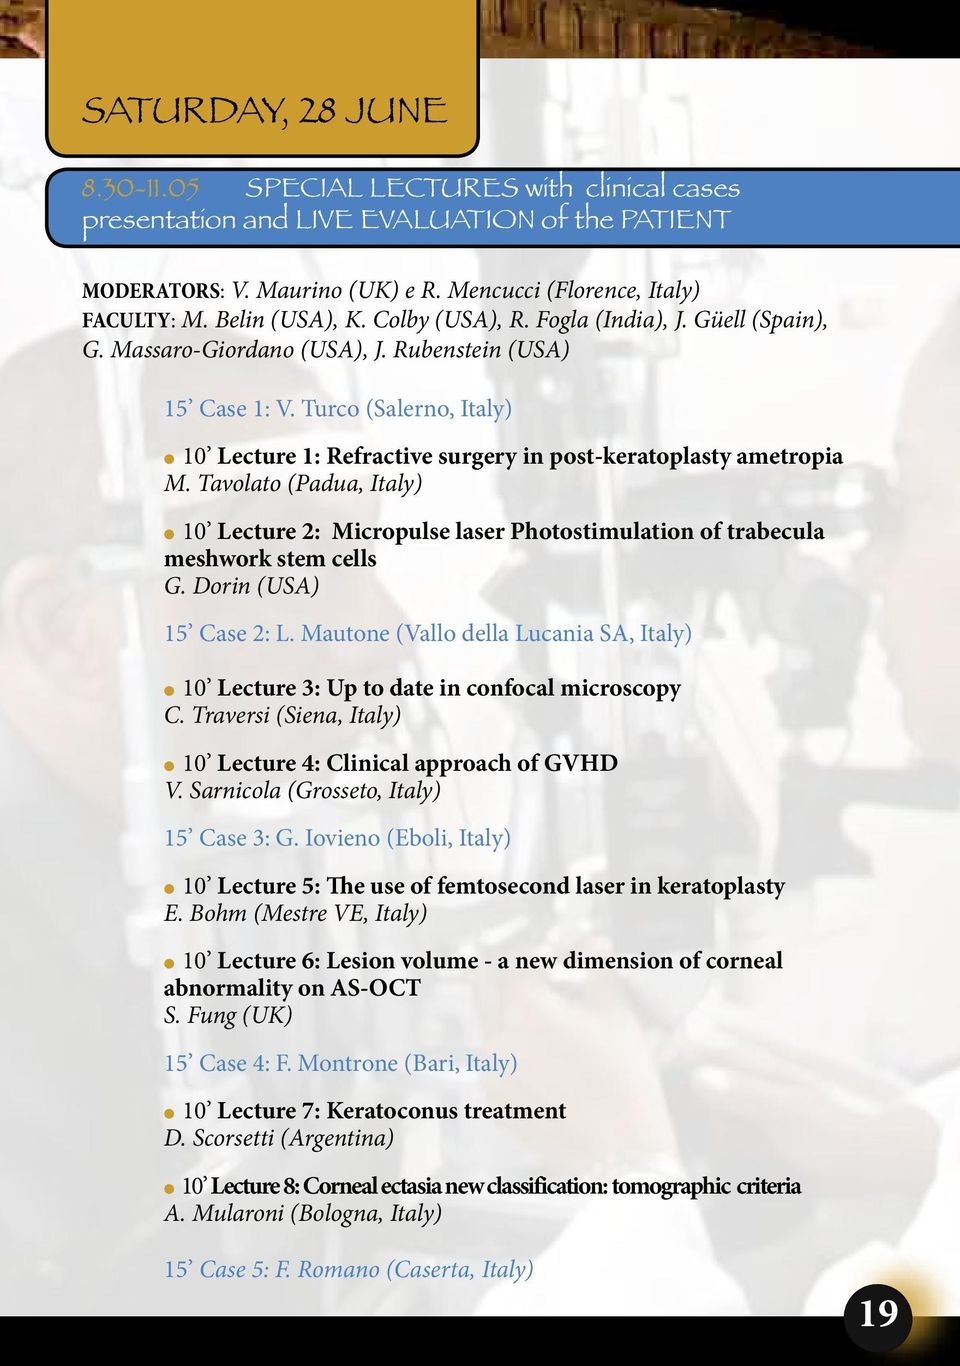 Turco (Salerno, Italy) l 10 Lecture 1: Refractive surgery in post-keratoplasty ametropia M.